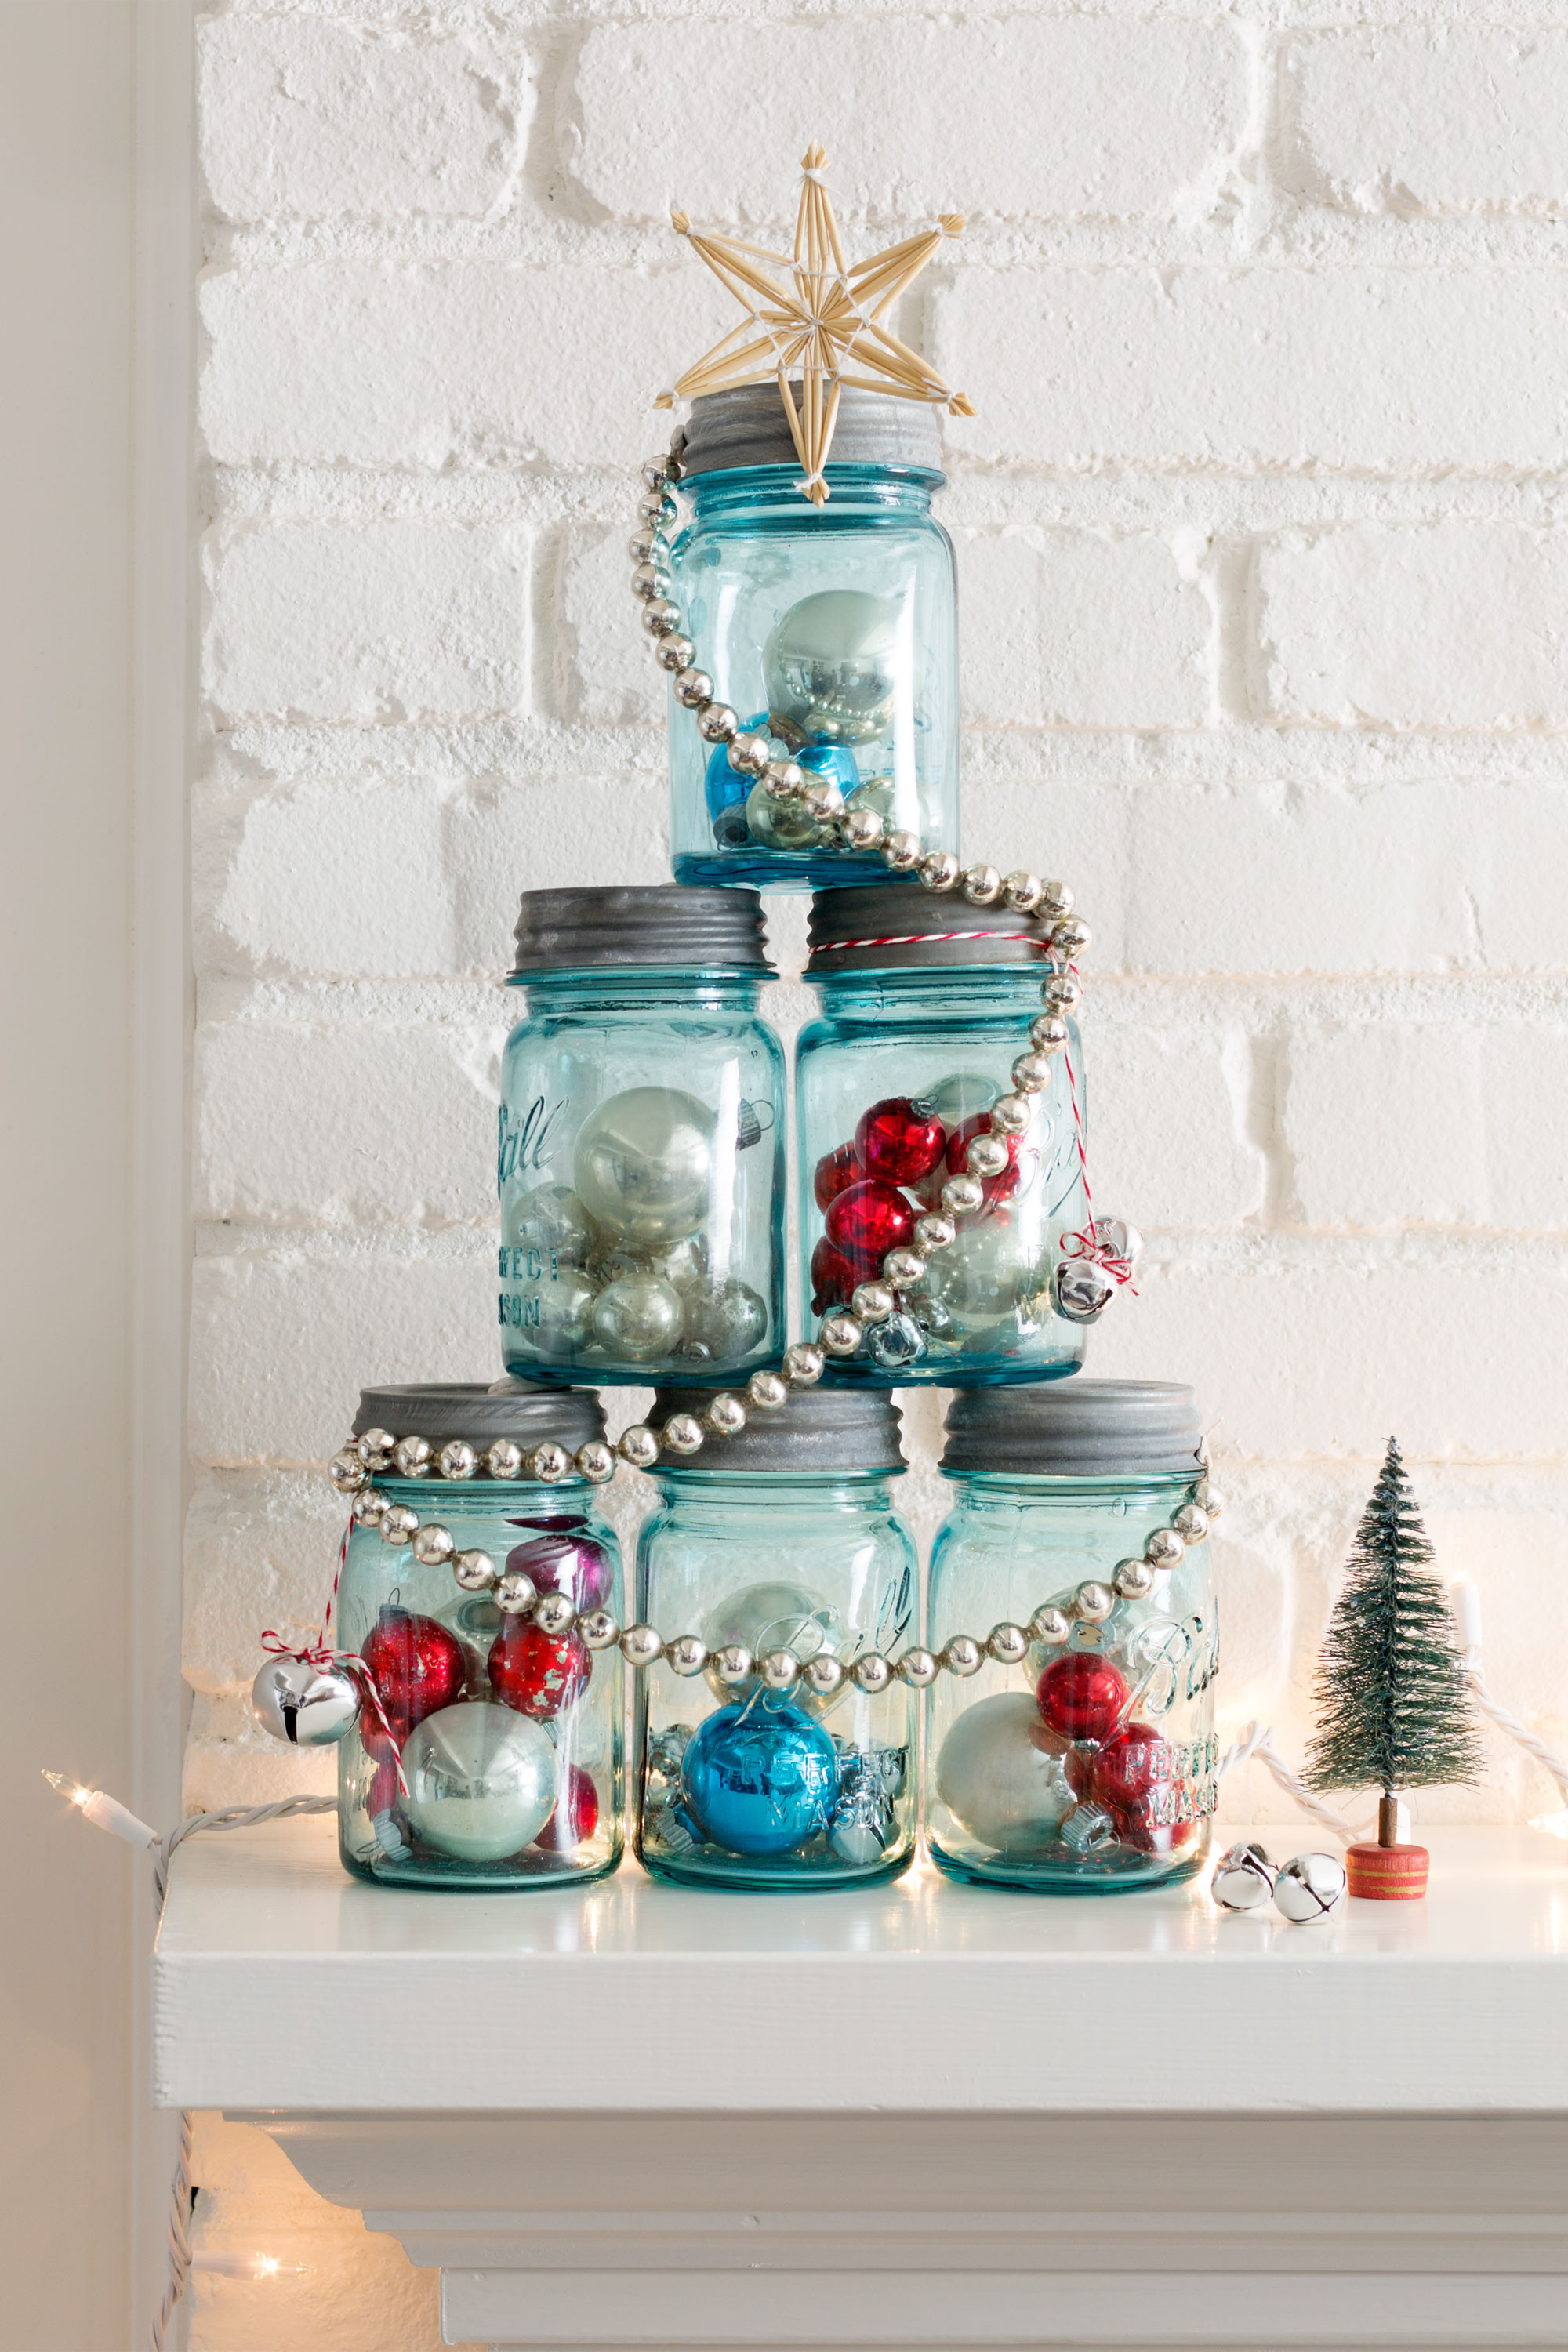 Best ideas about Christmas DIY Decoration Ideas . Save or Pin 37 DIY Homemade Christmas Decorations Christmas Decor Now.